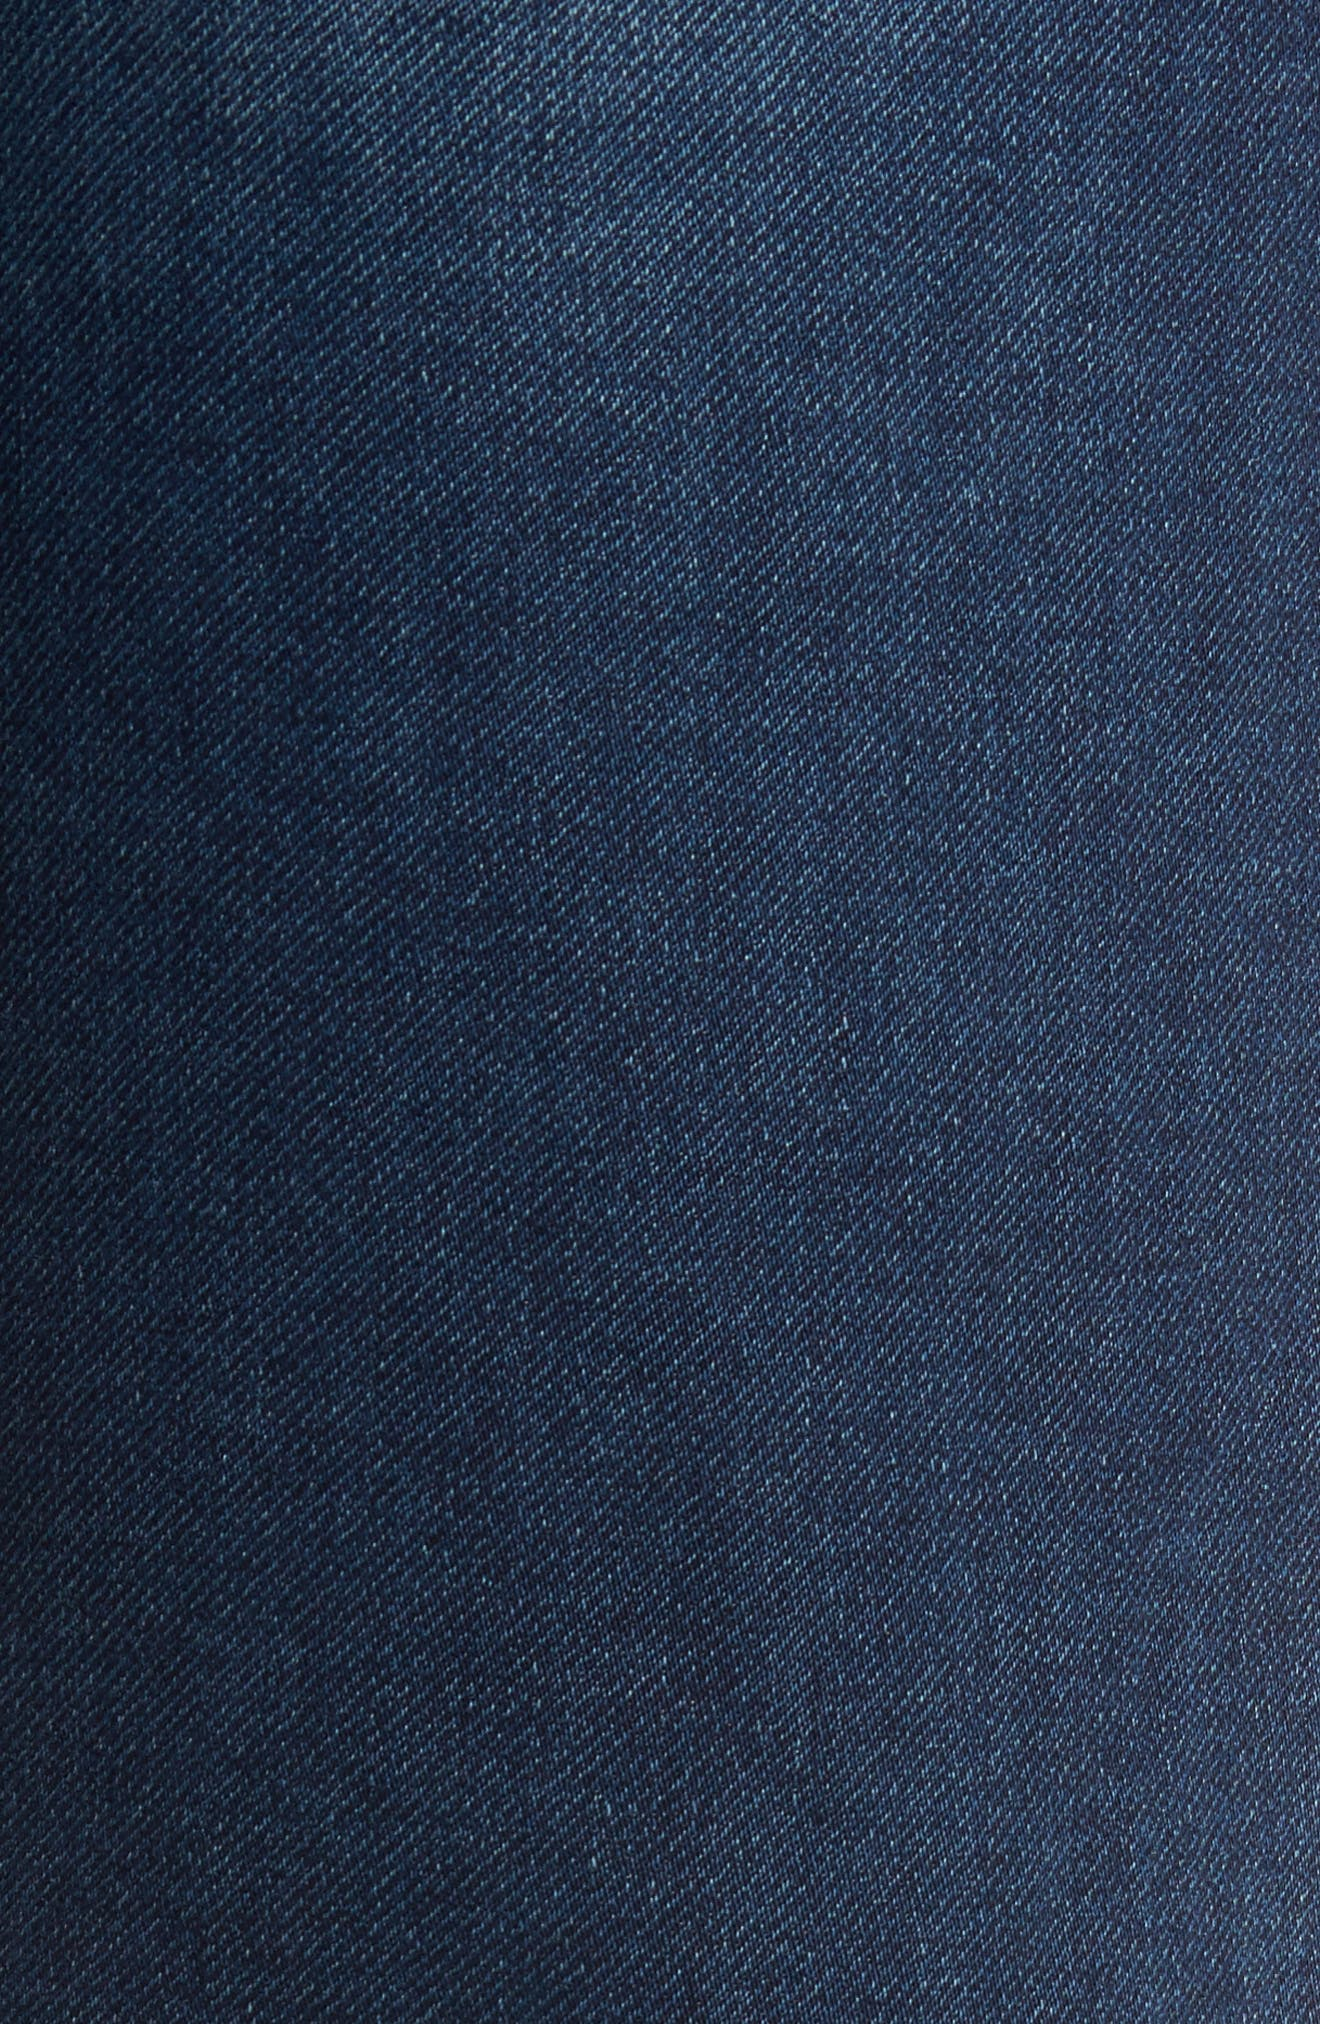 Jimmy Slim Straight Leg Jeans,                             Alternate thumbnail 5, color,                             Talk About Blue